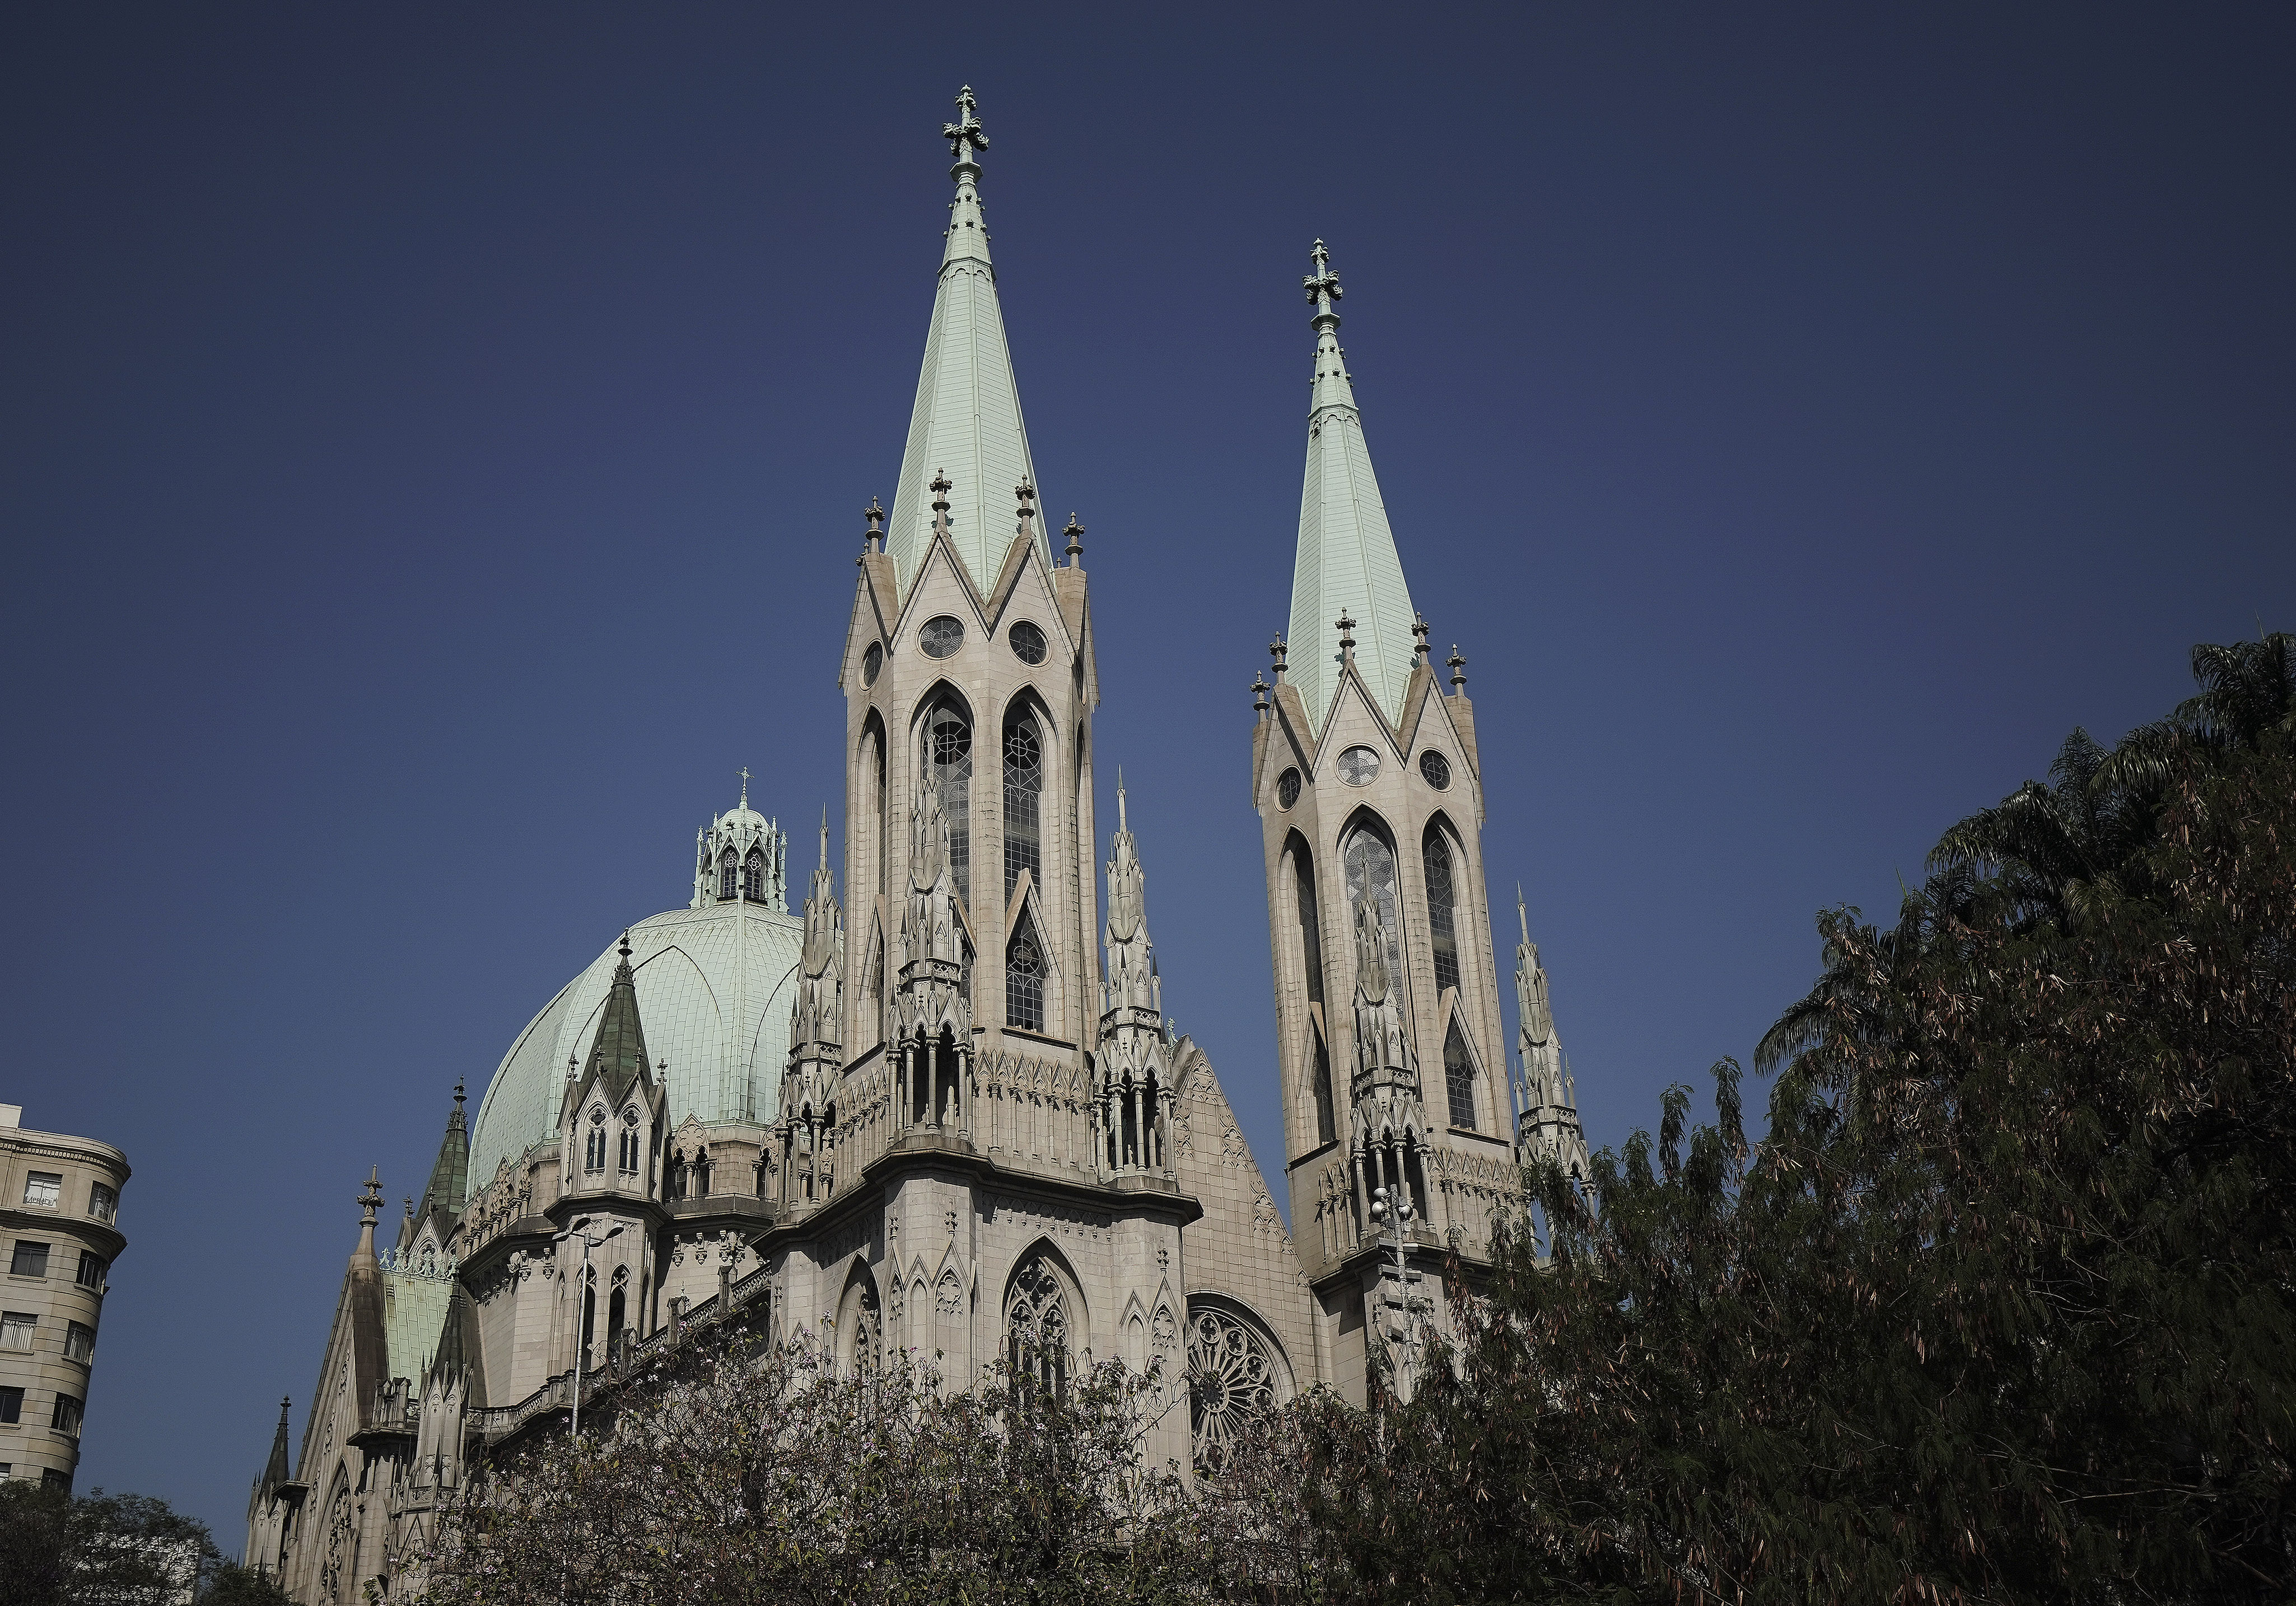 Cathedral in Sao Paulo, Brazil, on Aug. 31, 2019.